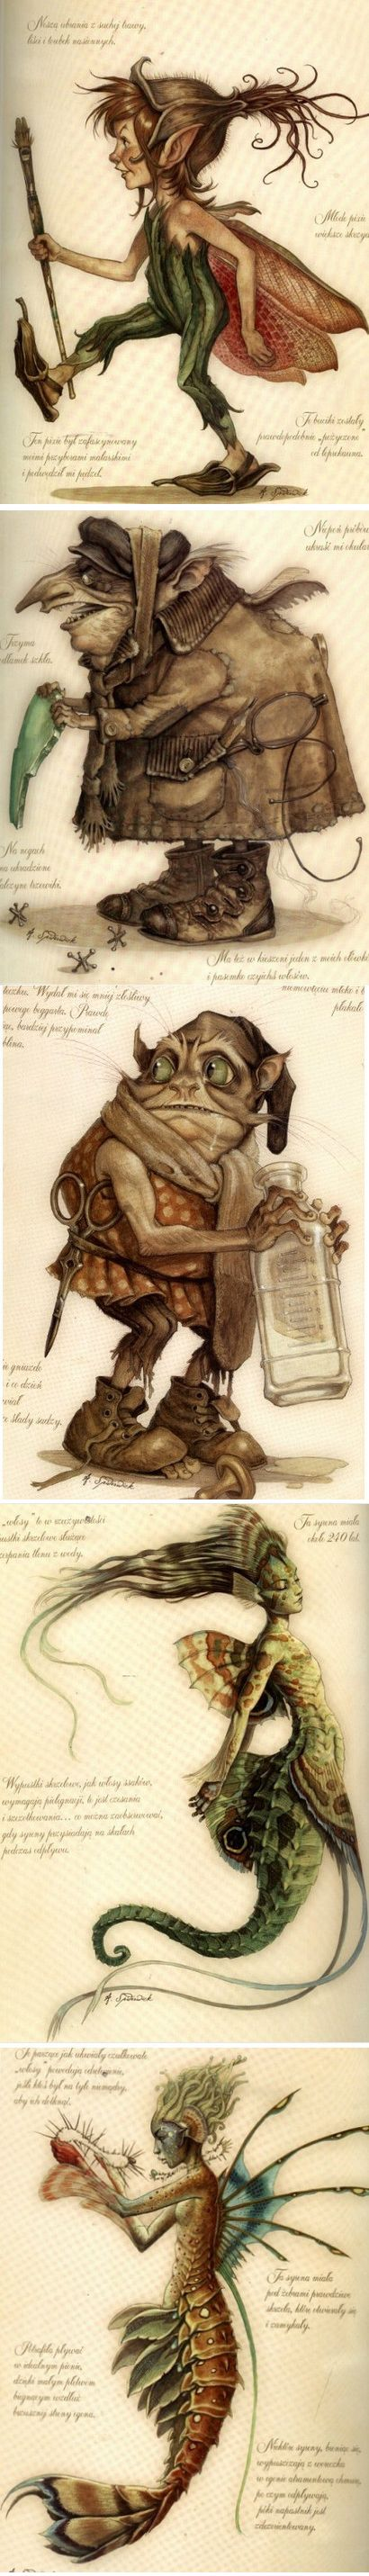 Goblins  Fairies by Tony Di Terlizzi: My children loved these stories and I enjoyed reading to them. Such detailed drawings.